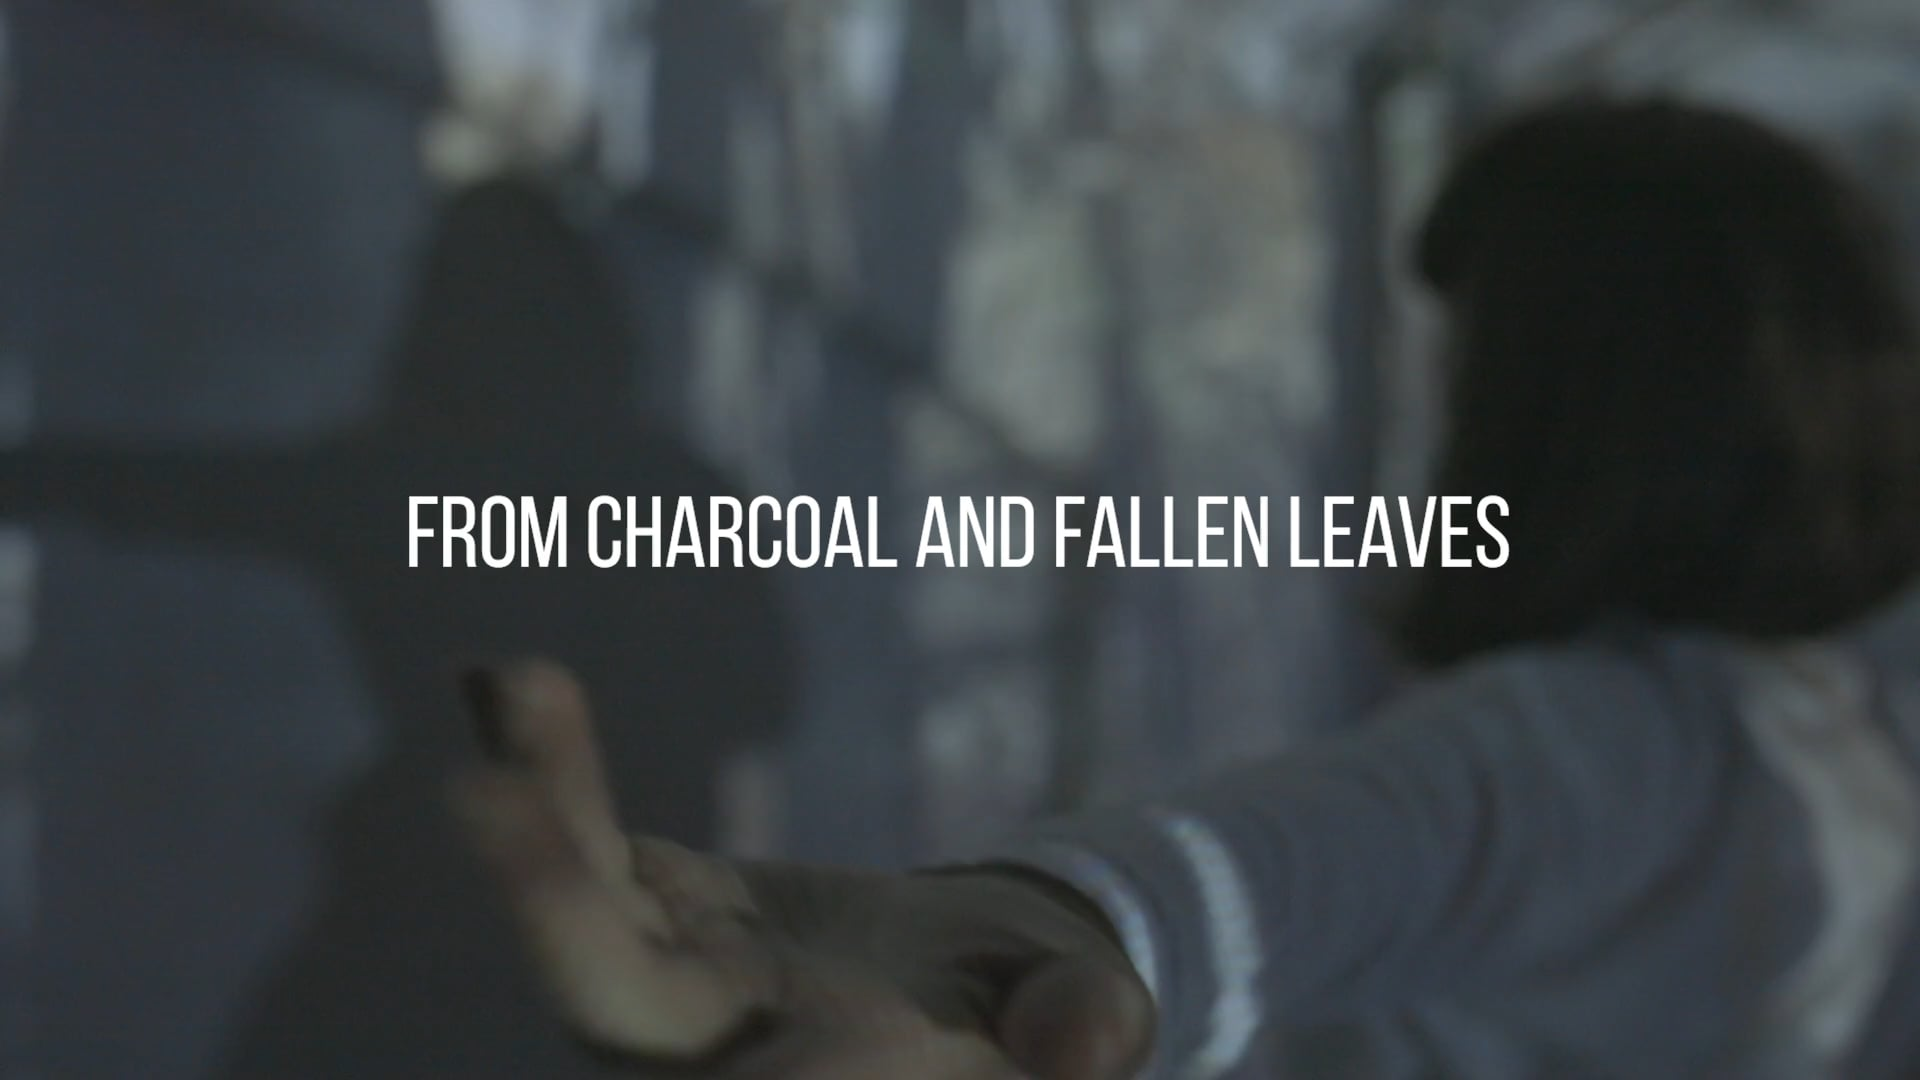 From Charcoal and Fallen Leaves